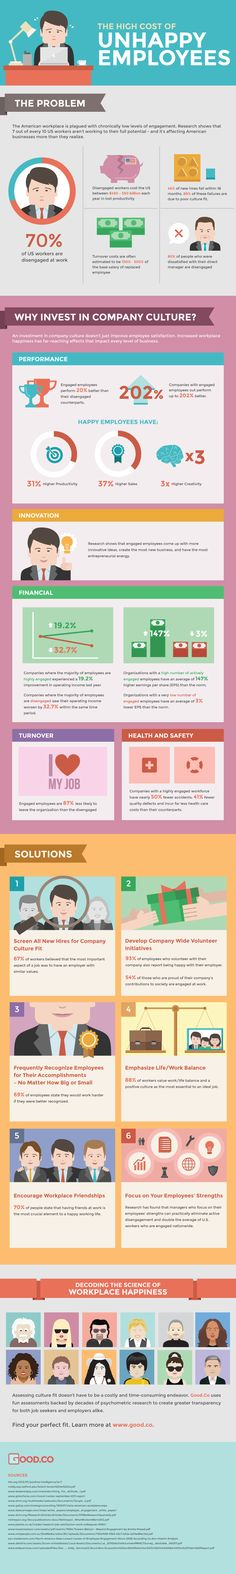 The Dollars and Sense of Employee Happiness [#infographic]